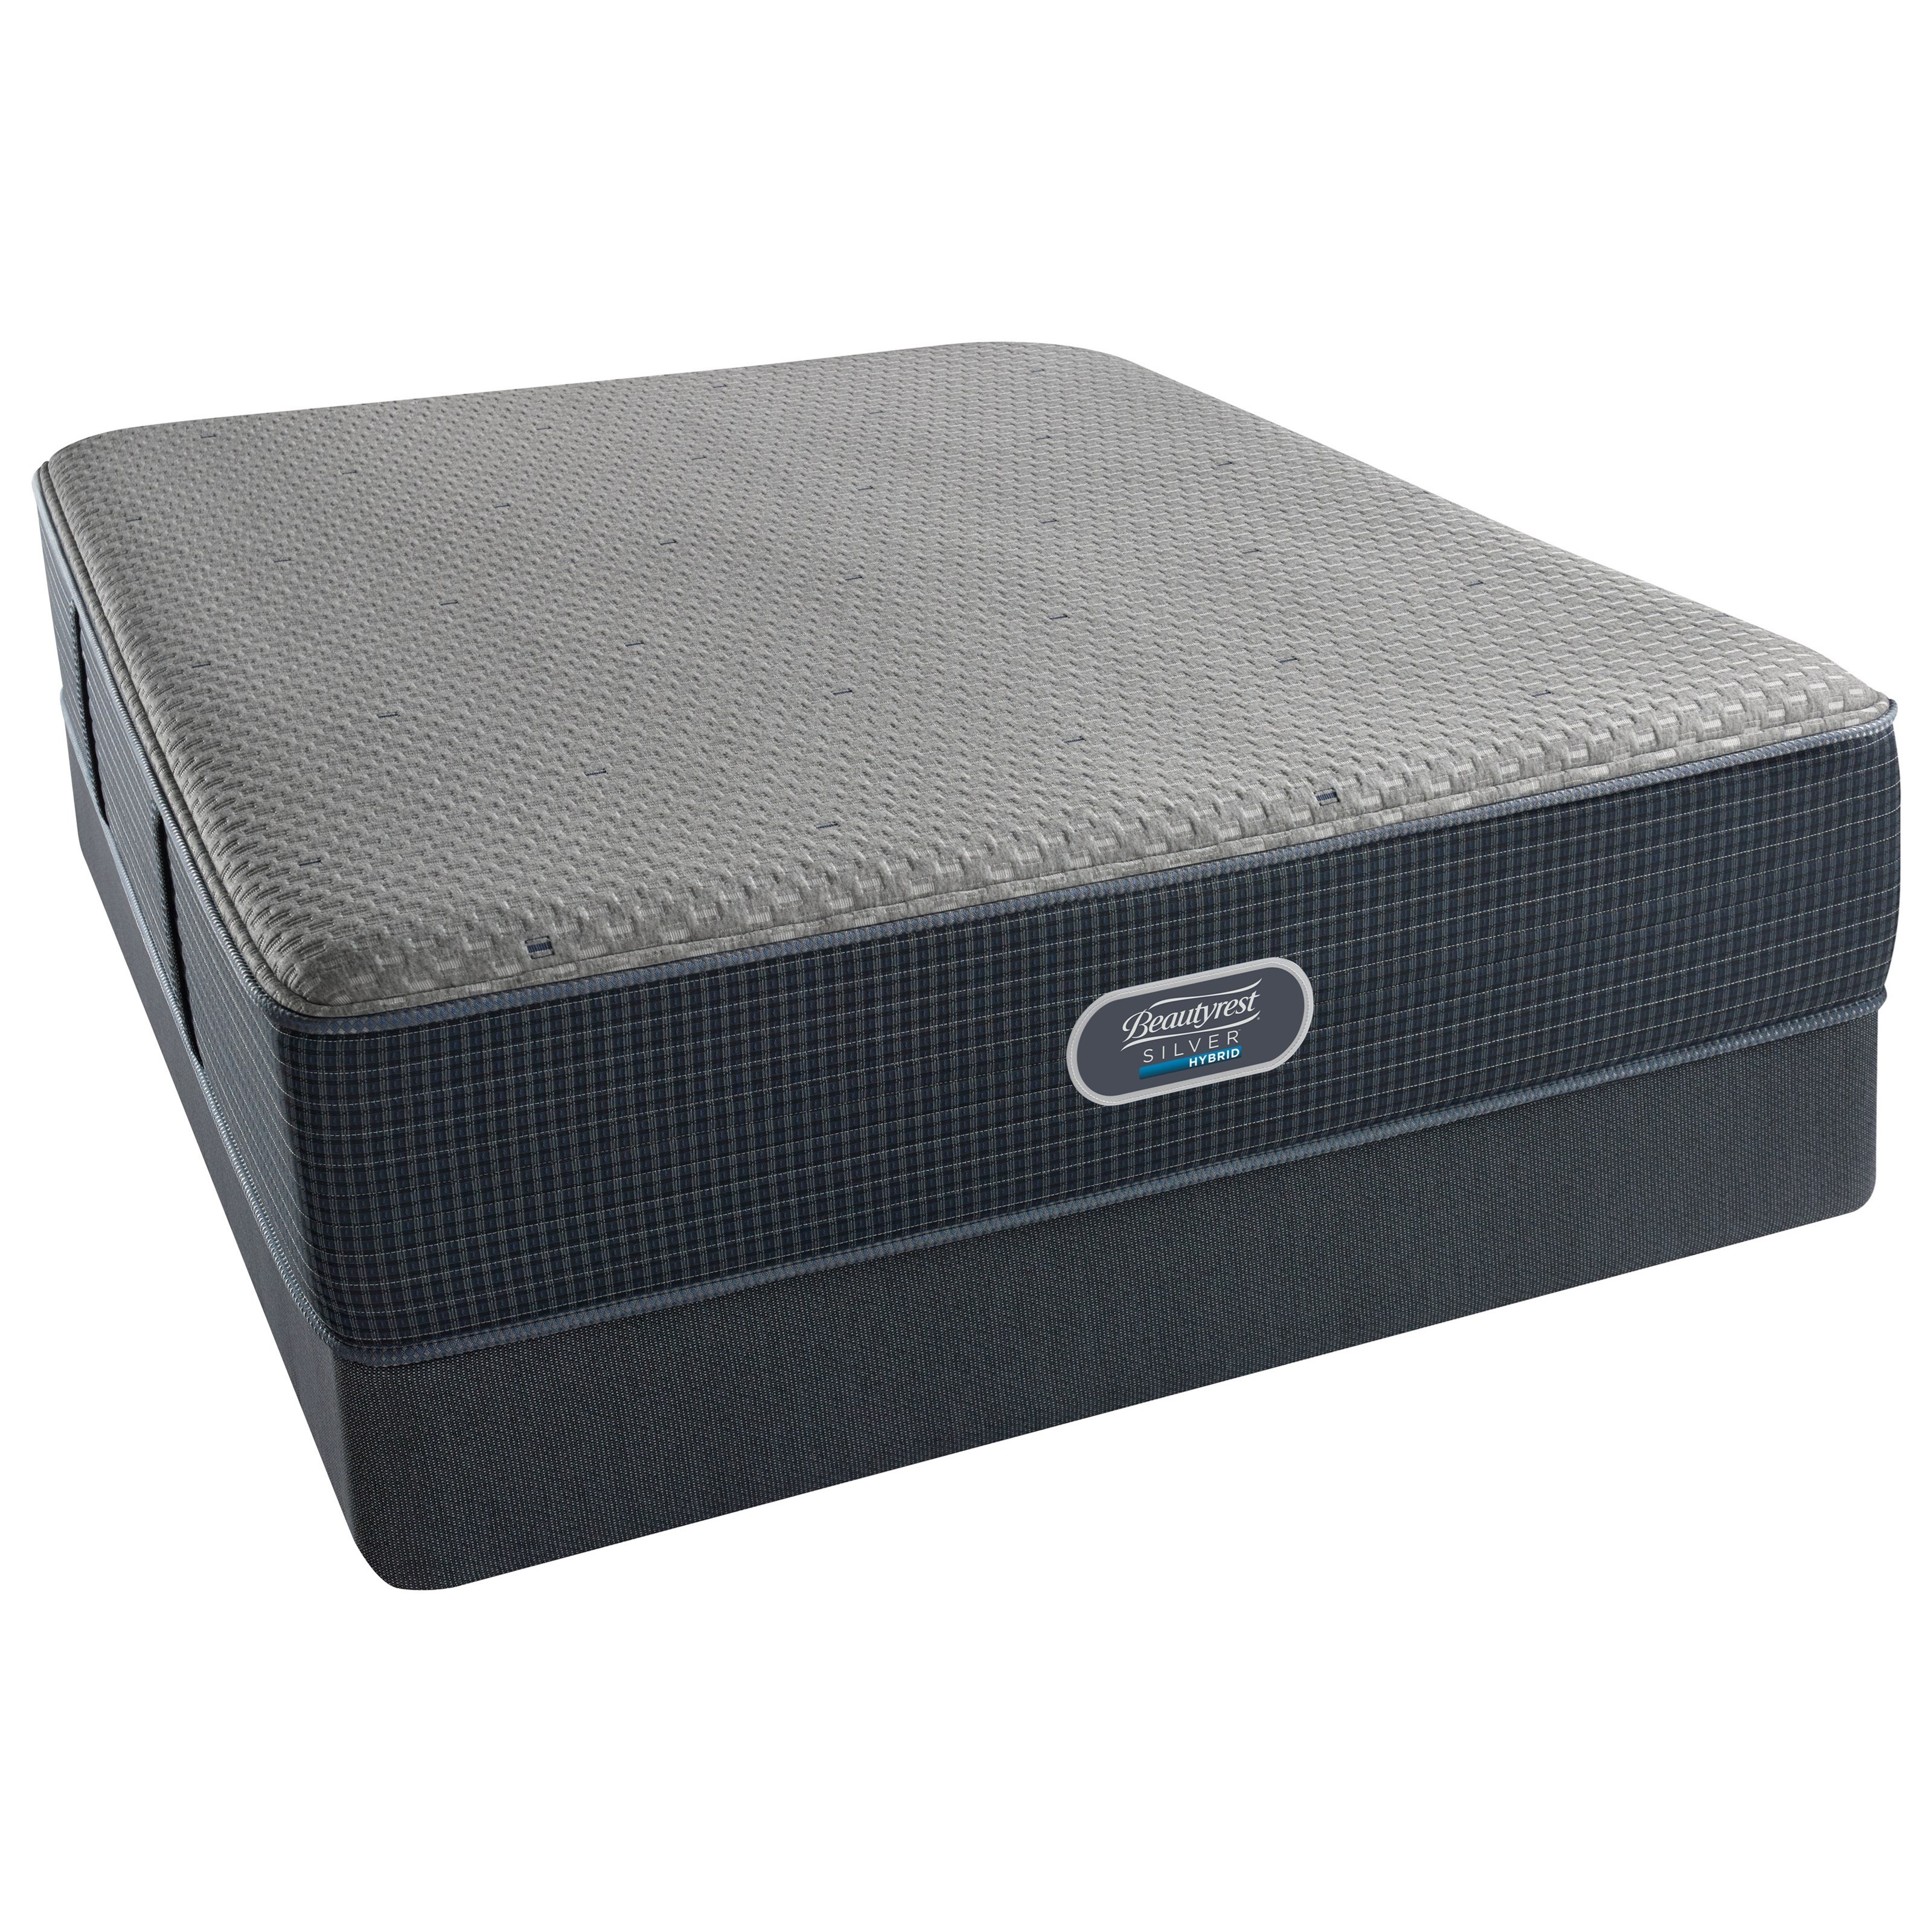 Beautyrest Silver Hybrid Cascade Mist Firm Beautyrest Silver Full Set - Item Number: 700601002-1030+700600254-5030